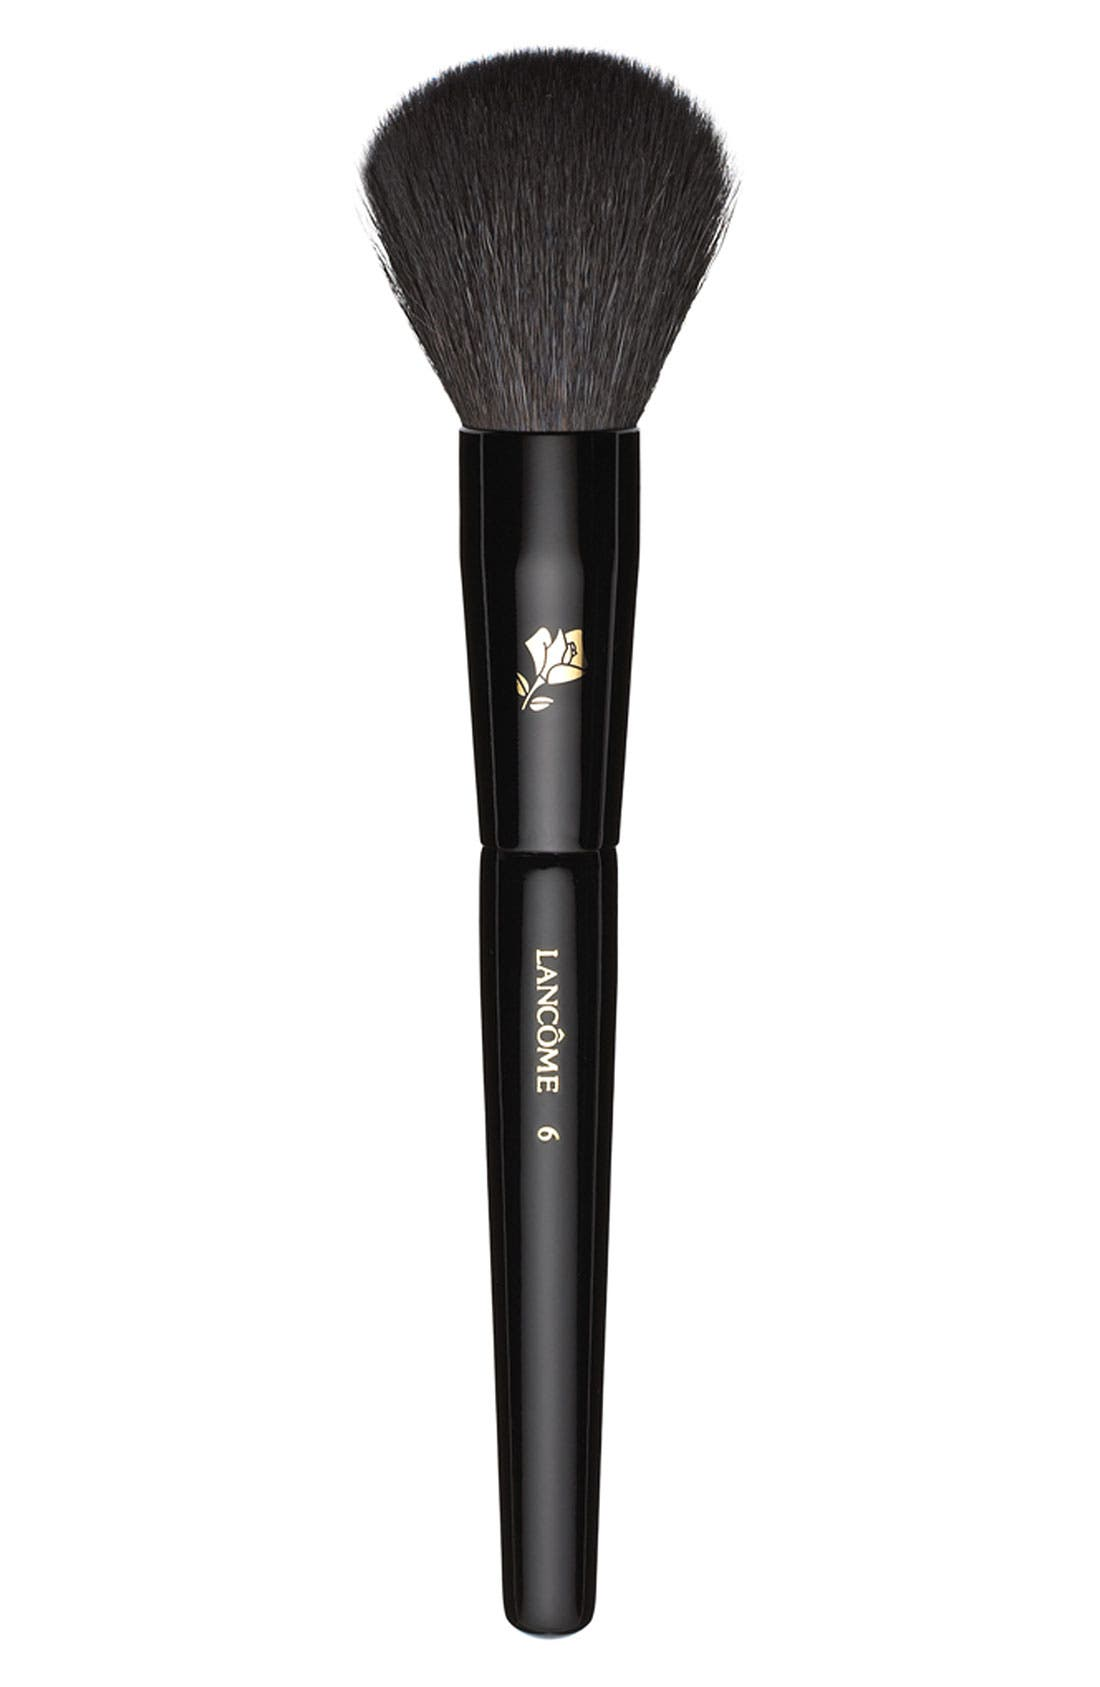 Natural Bristled Blush Brush,                             Main thumbnail 1, color,                             000